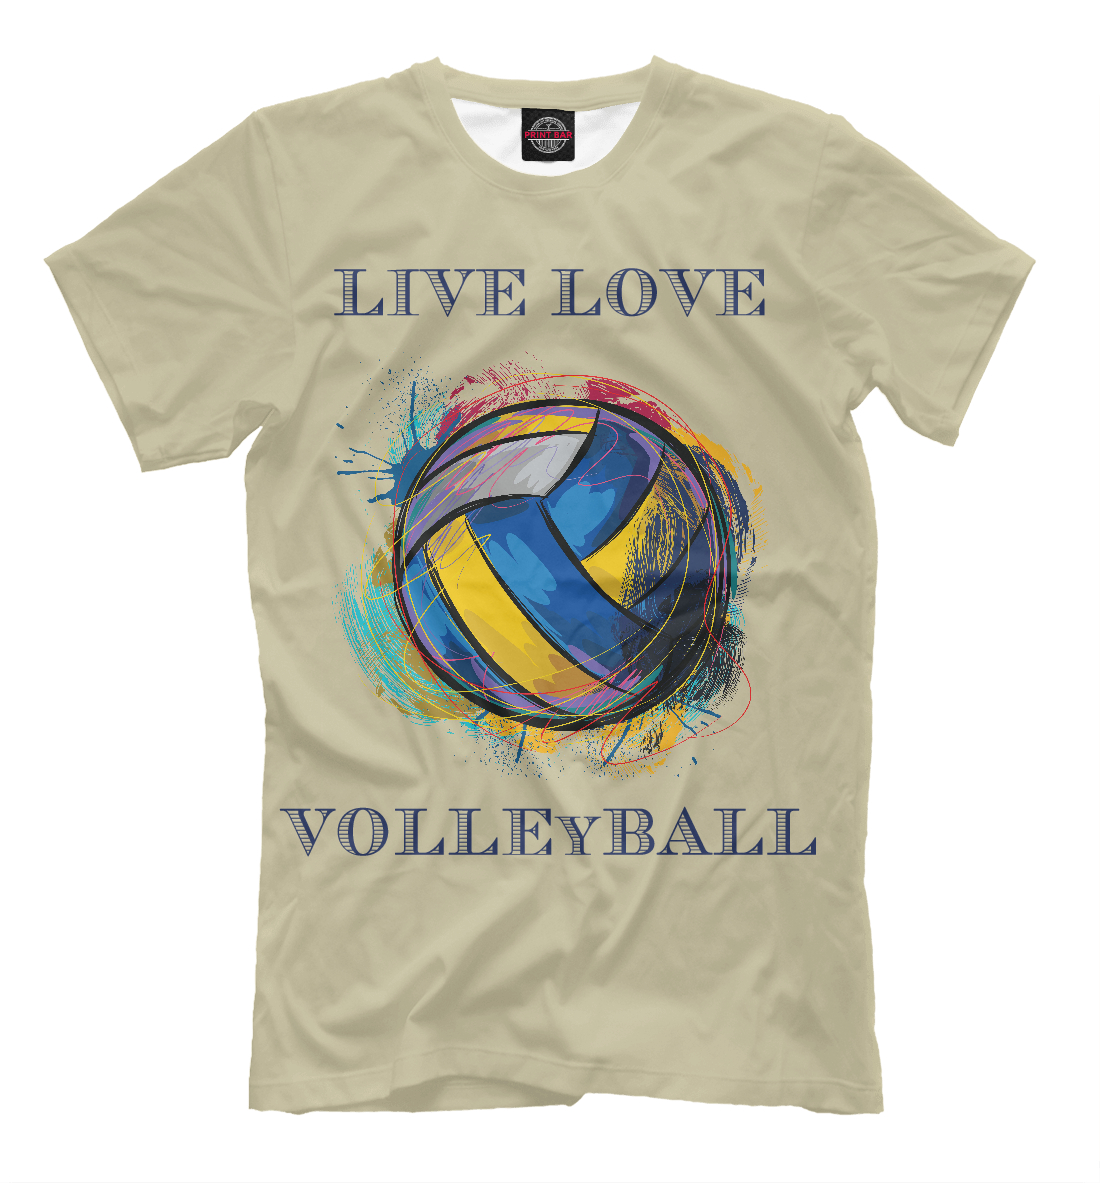 Купить LIVE LOVE VOLLEYBALL, Printbar, Футболки, VLB-972366-fut-2